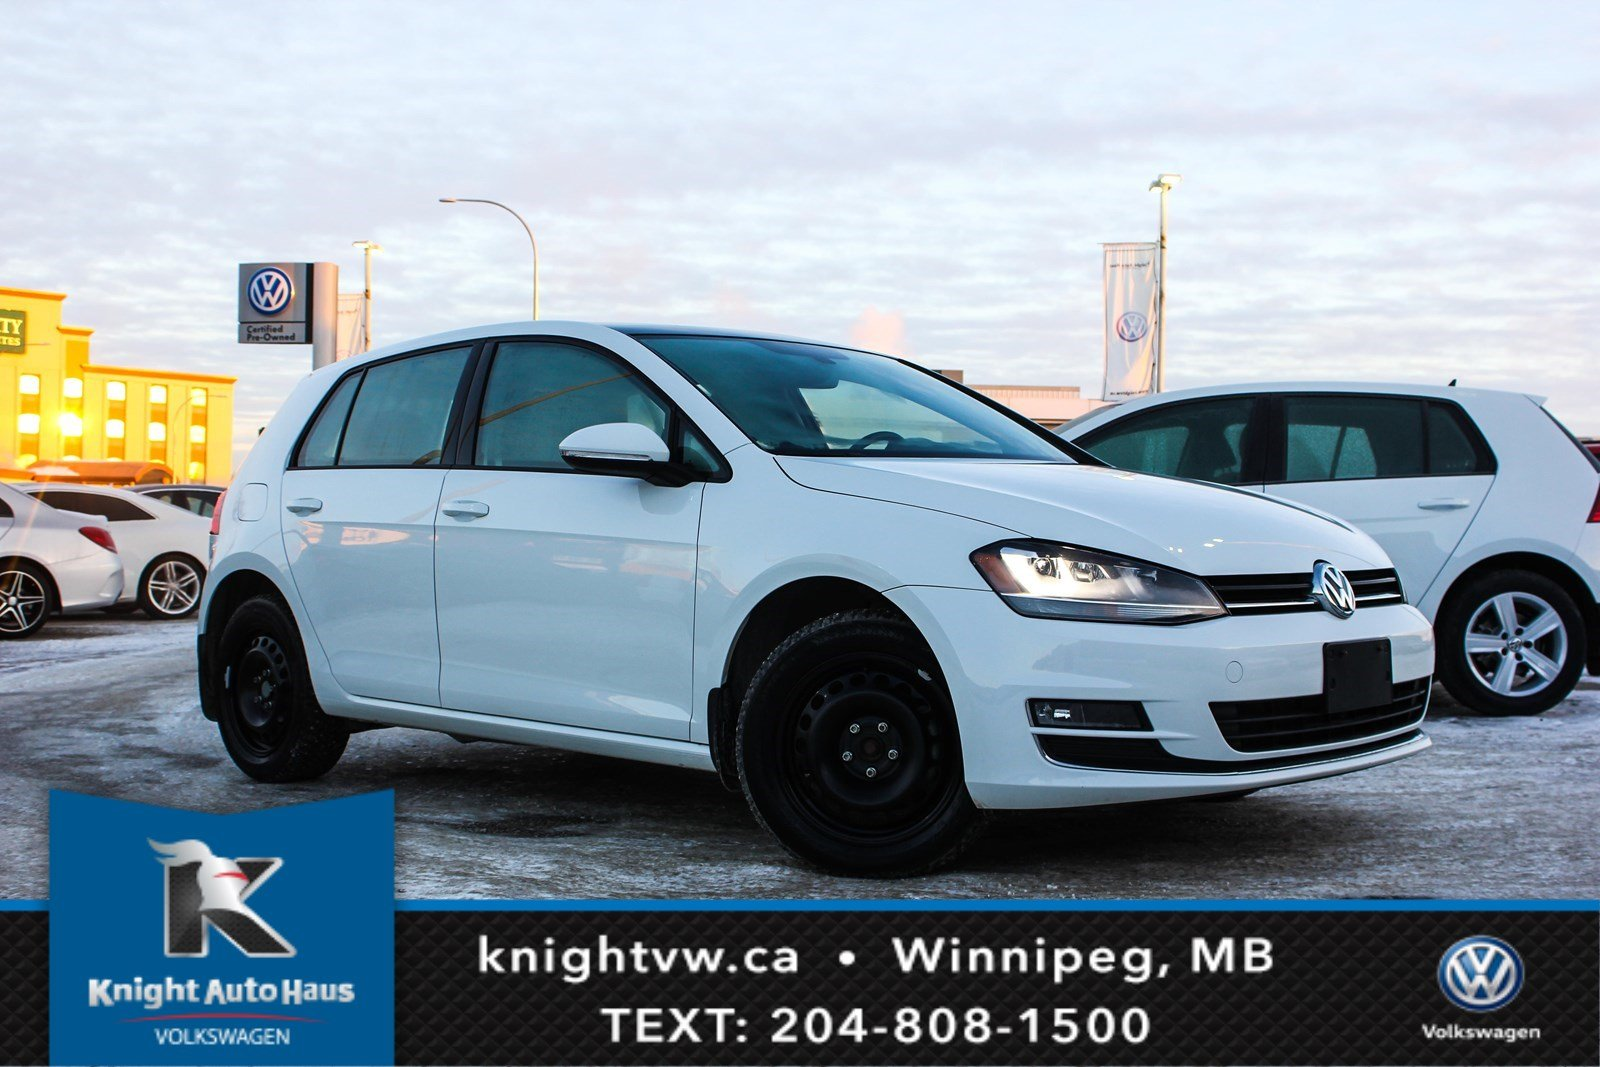 Certified Pre-Owned 2017 Volkswagen Golf Highline 5Doors w/Drive Assist/Light/Winter Tires 0.9% Financing Available OAC.